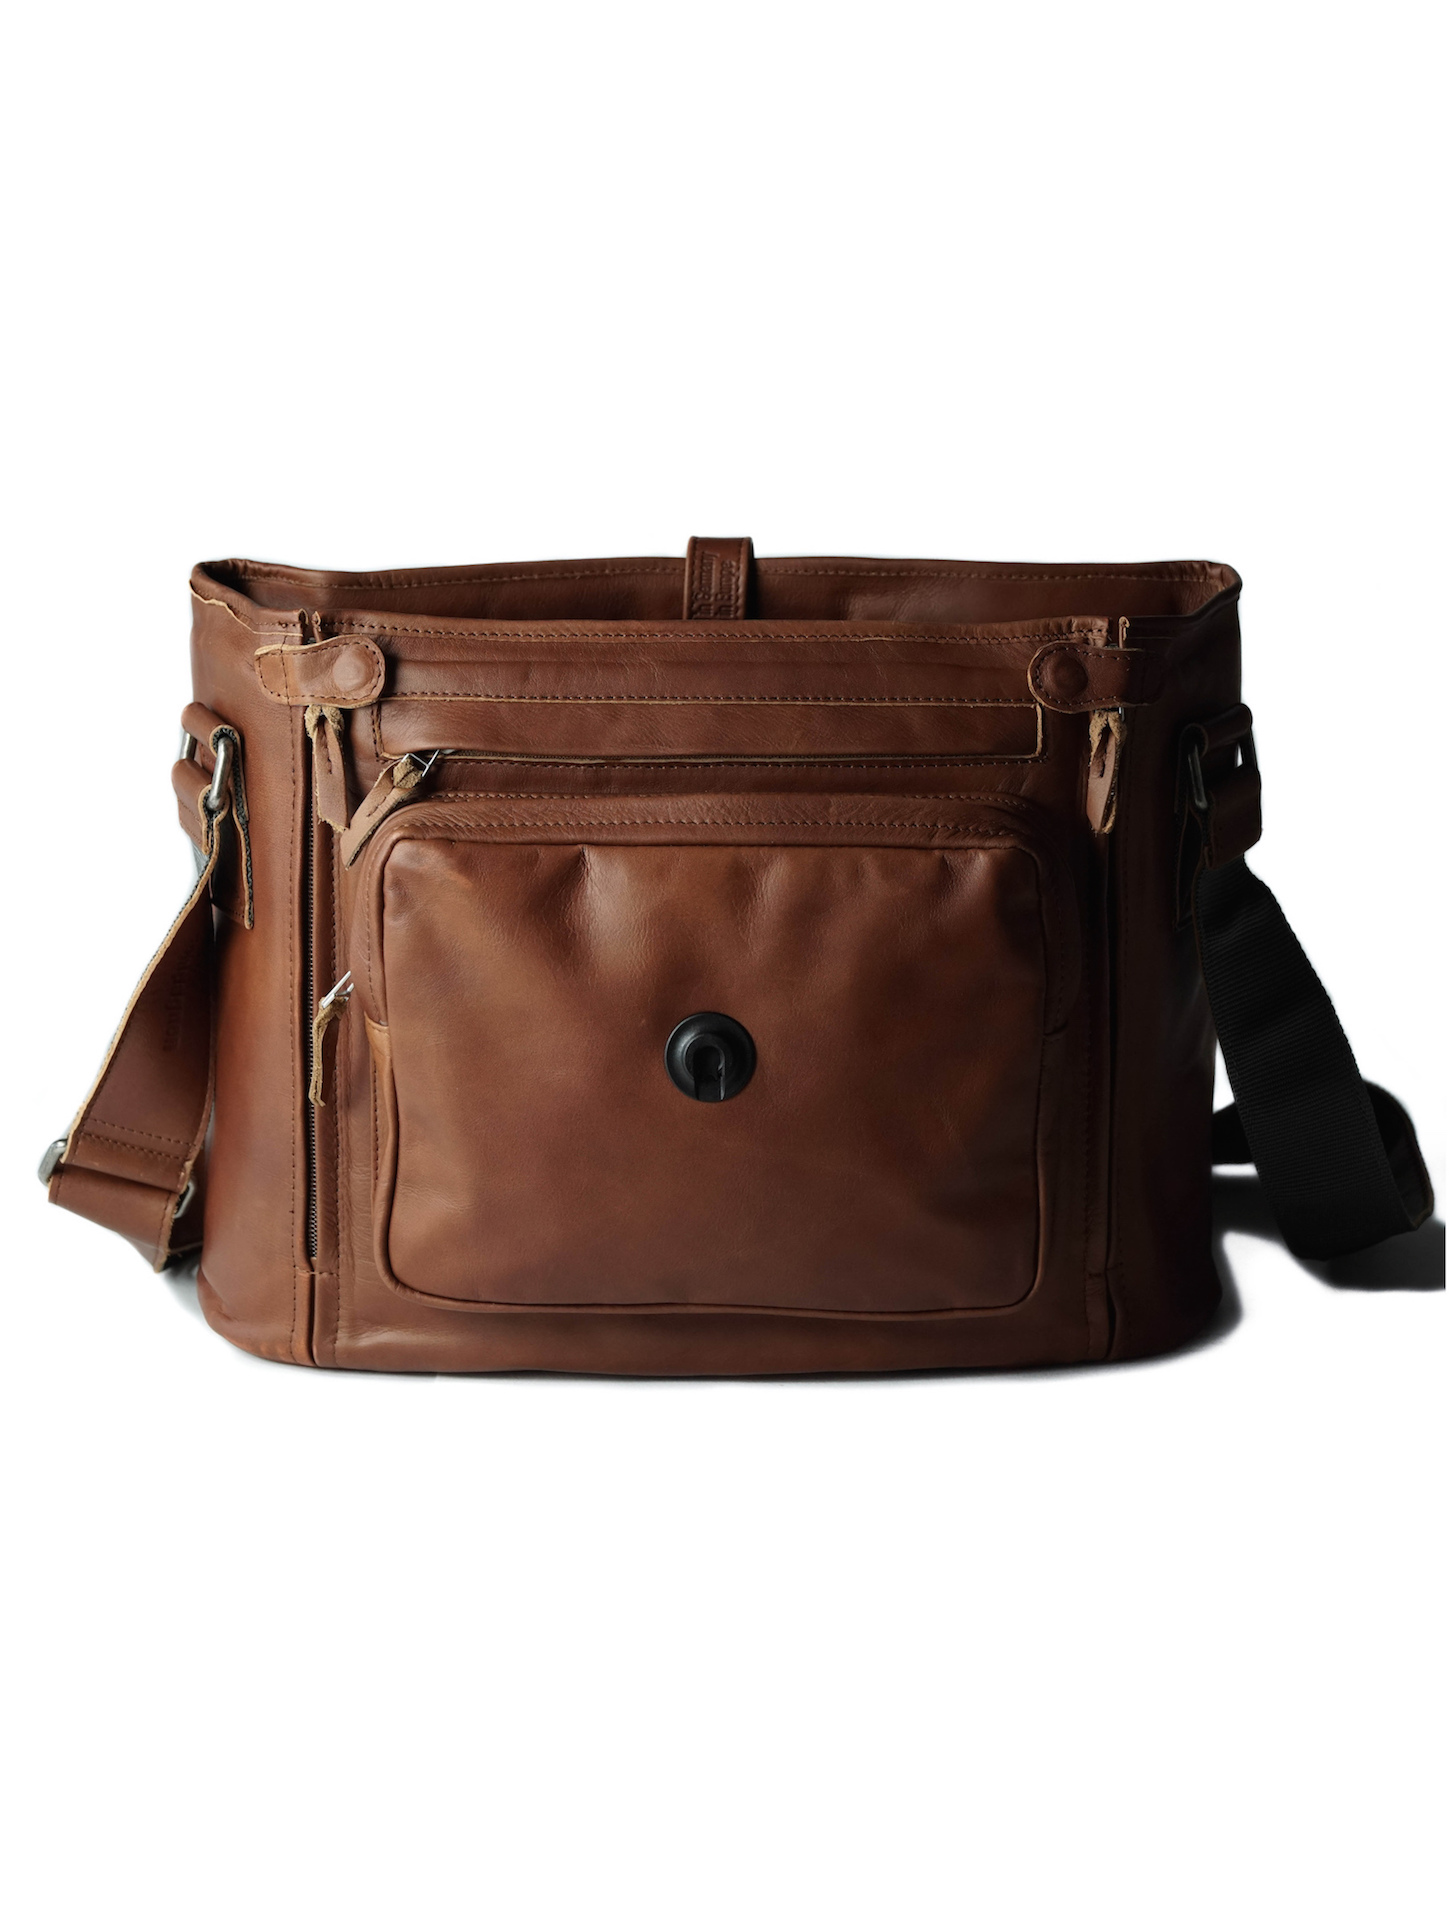 compagnon_messenger_light_brown_106-11-11-shop